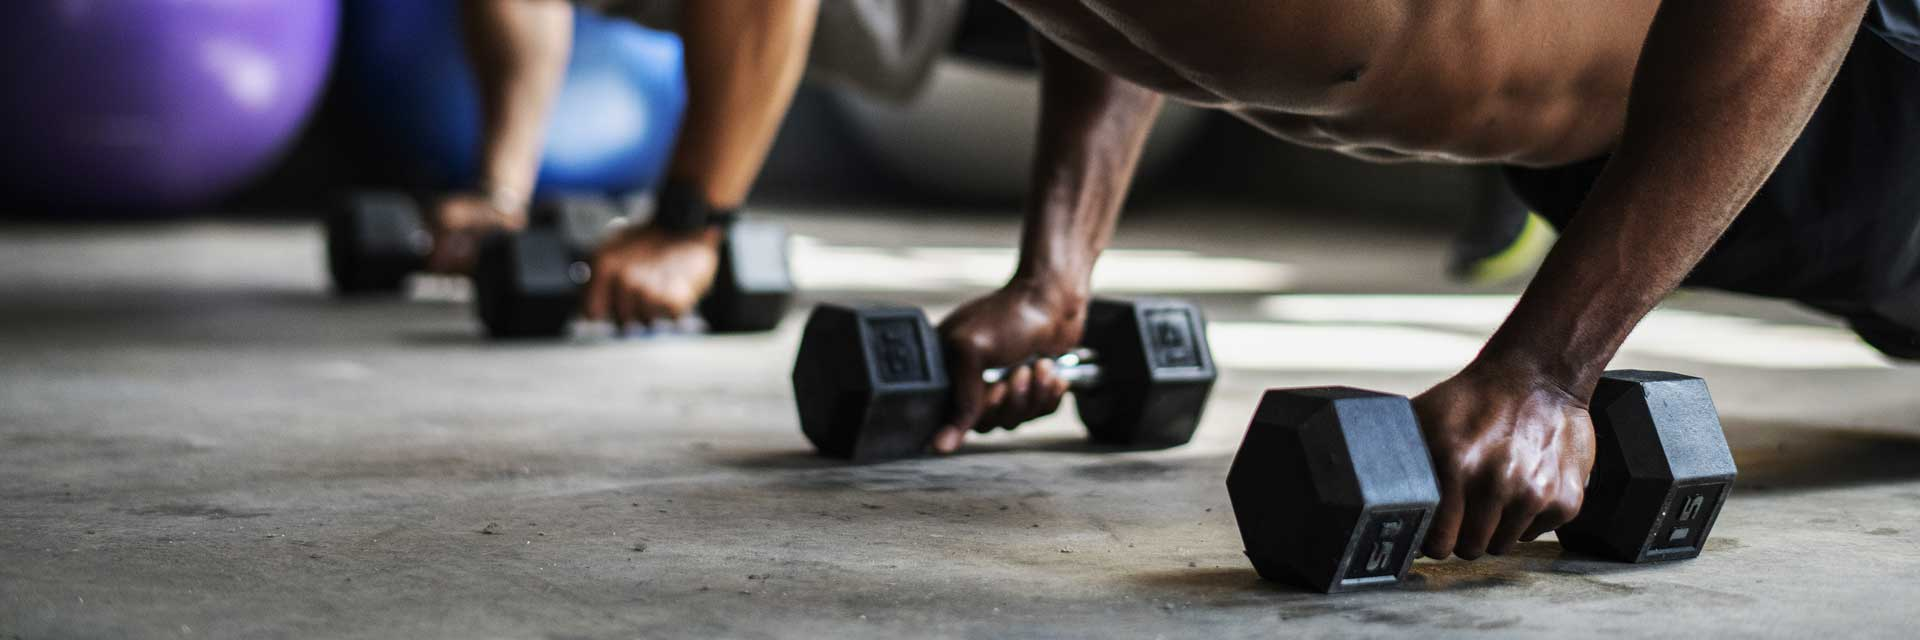 Men's Fitness - Training in the gym